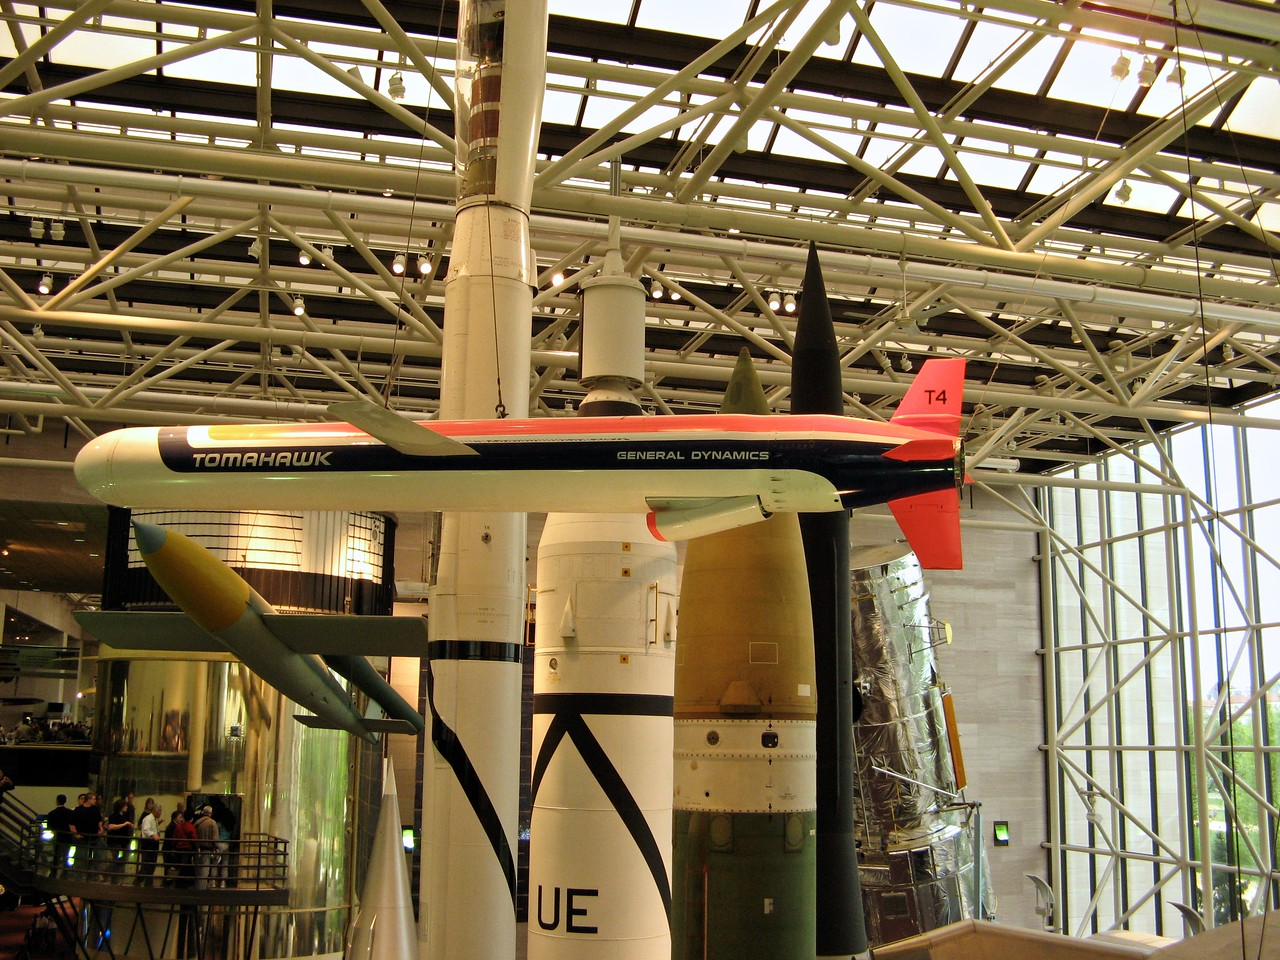 Tomahawk Missle in the National Air and Space Museum (NASM) of the Smithsonian Institution.  It holds the largest collection of historic aircraft and spacecraft in the world in 161,145 square feet (14,970.9 m2) of exhibition floor space. It was established in 1976.